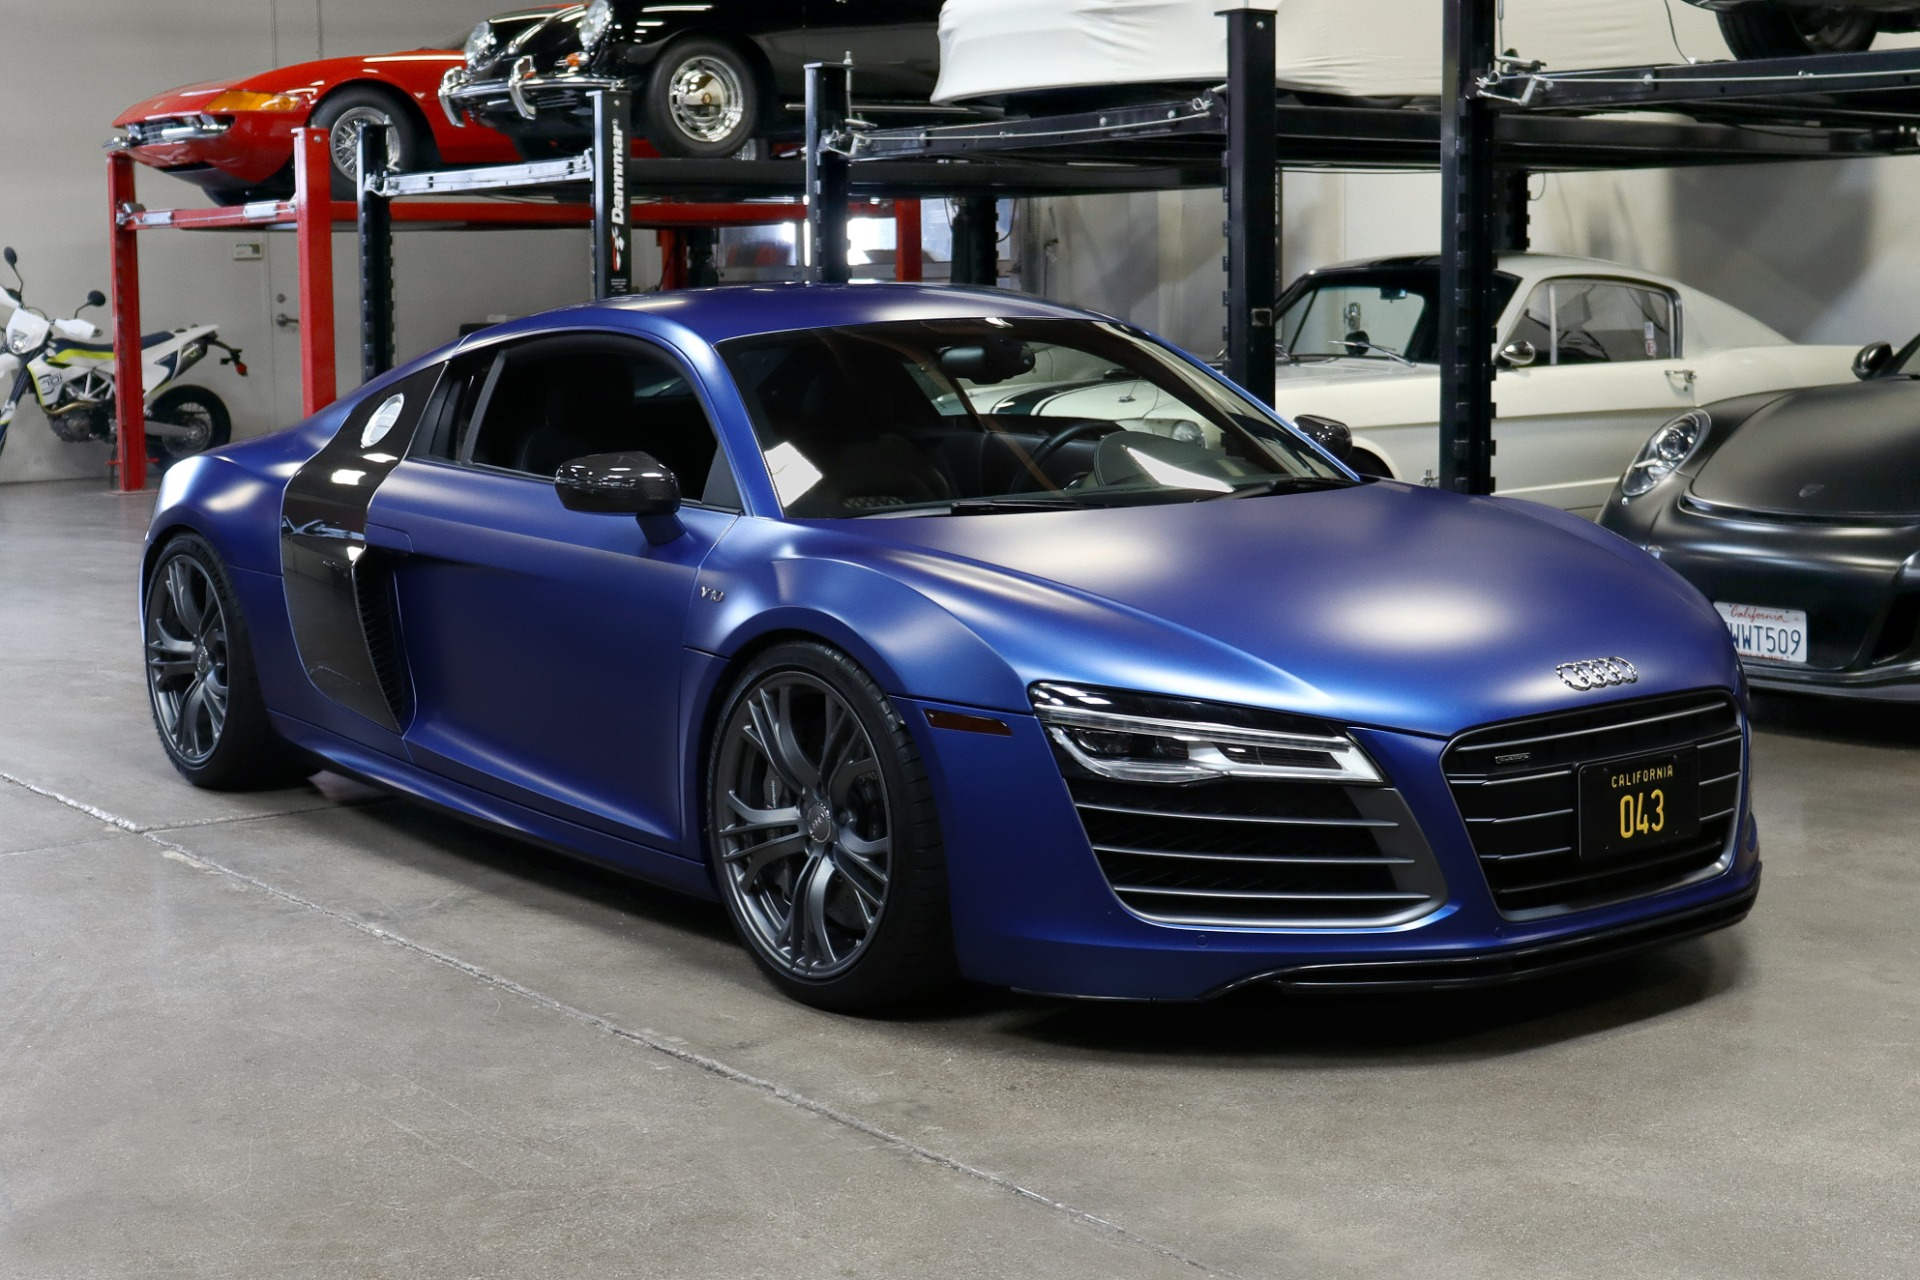 Used 2014 Audi R8 V10 Plus 5.2 quattro for sale $119,995 at San Francisco Sports Cars in San Carlos CA 94070 1